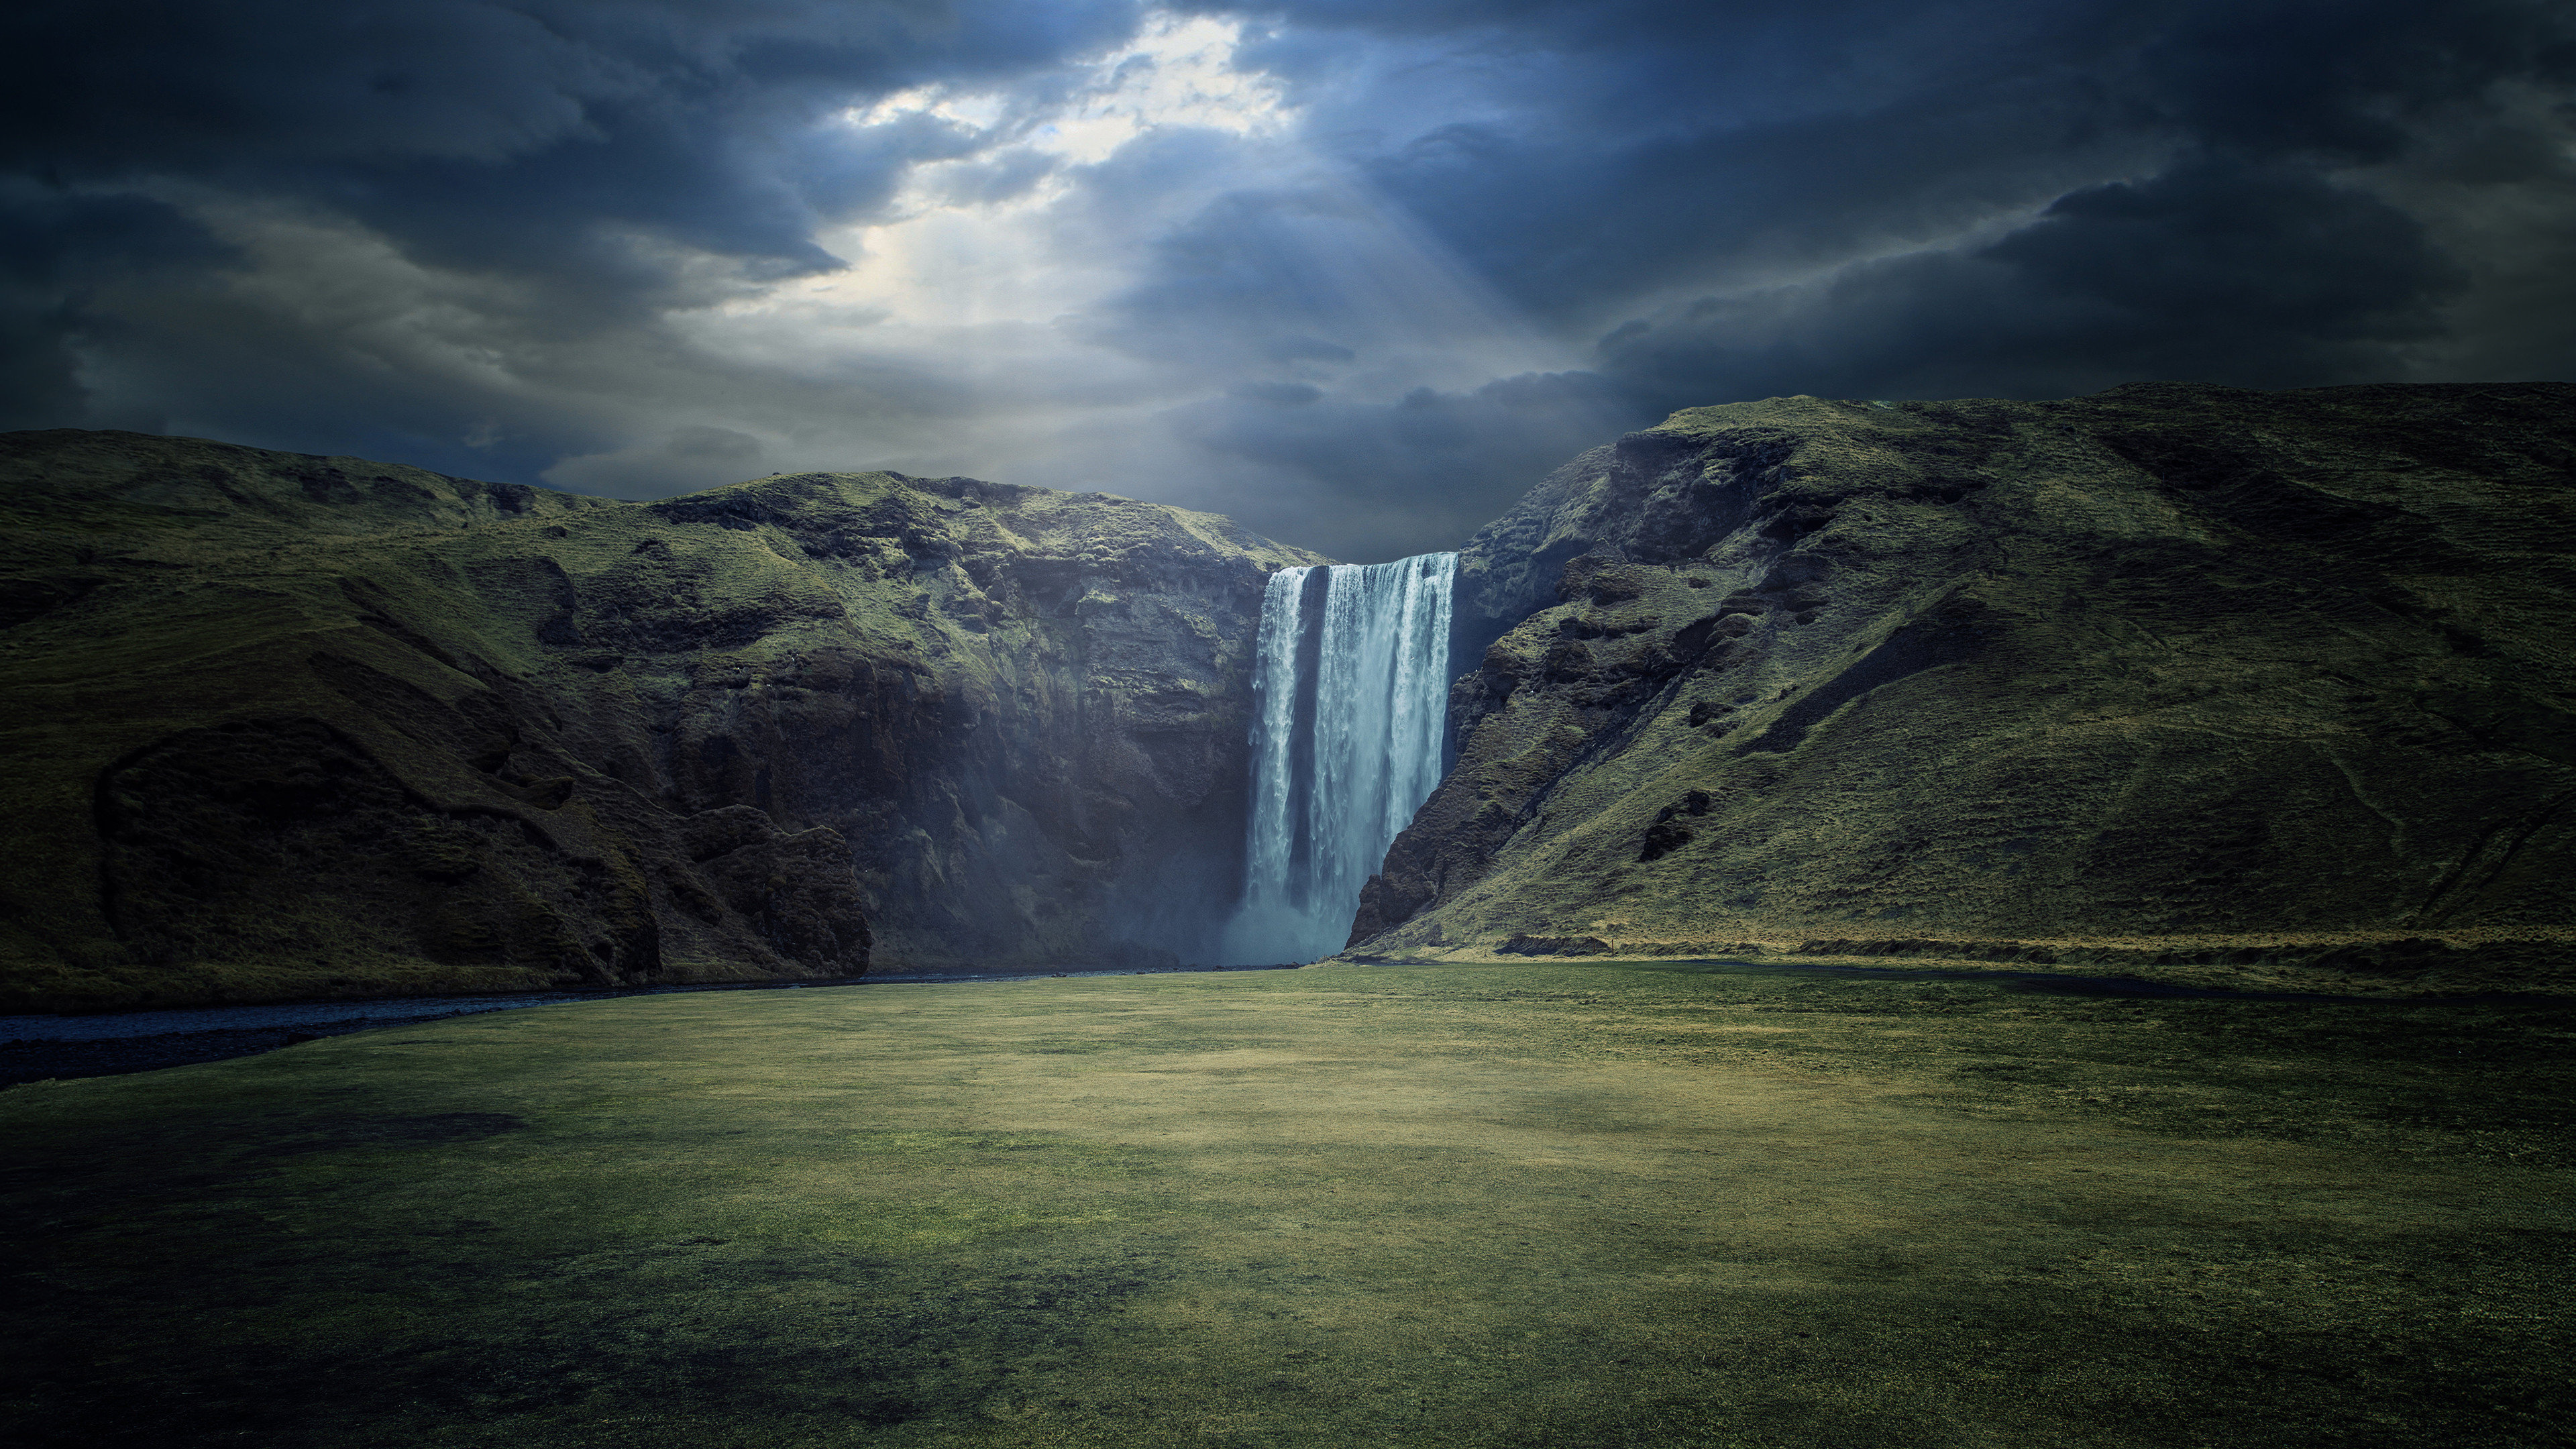 3d Wallpaper Download For Windows 10 Waterfall Landscape 4k Ultra Hd Wallpaper 3840x2160